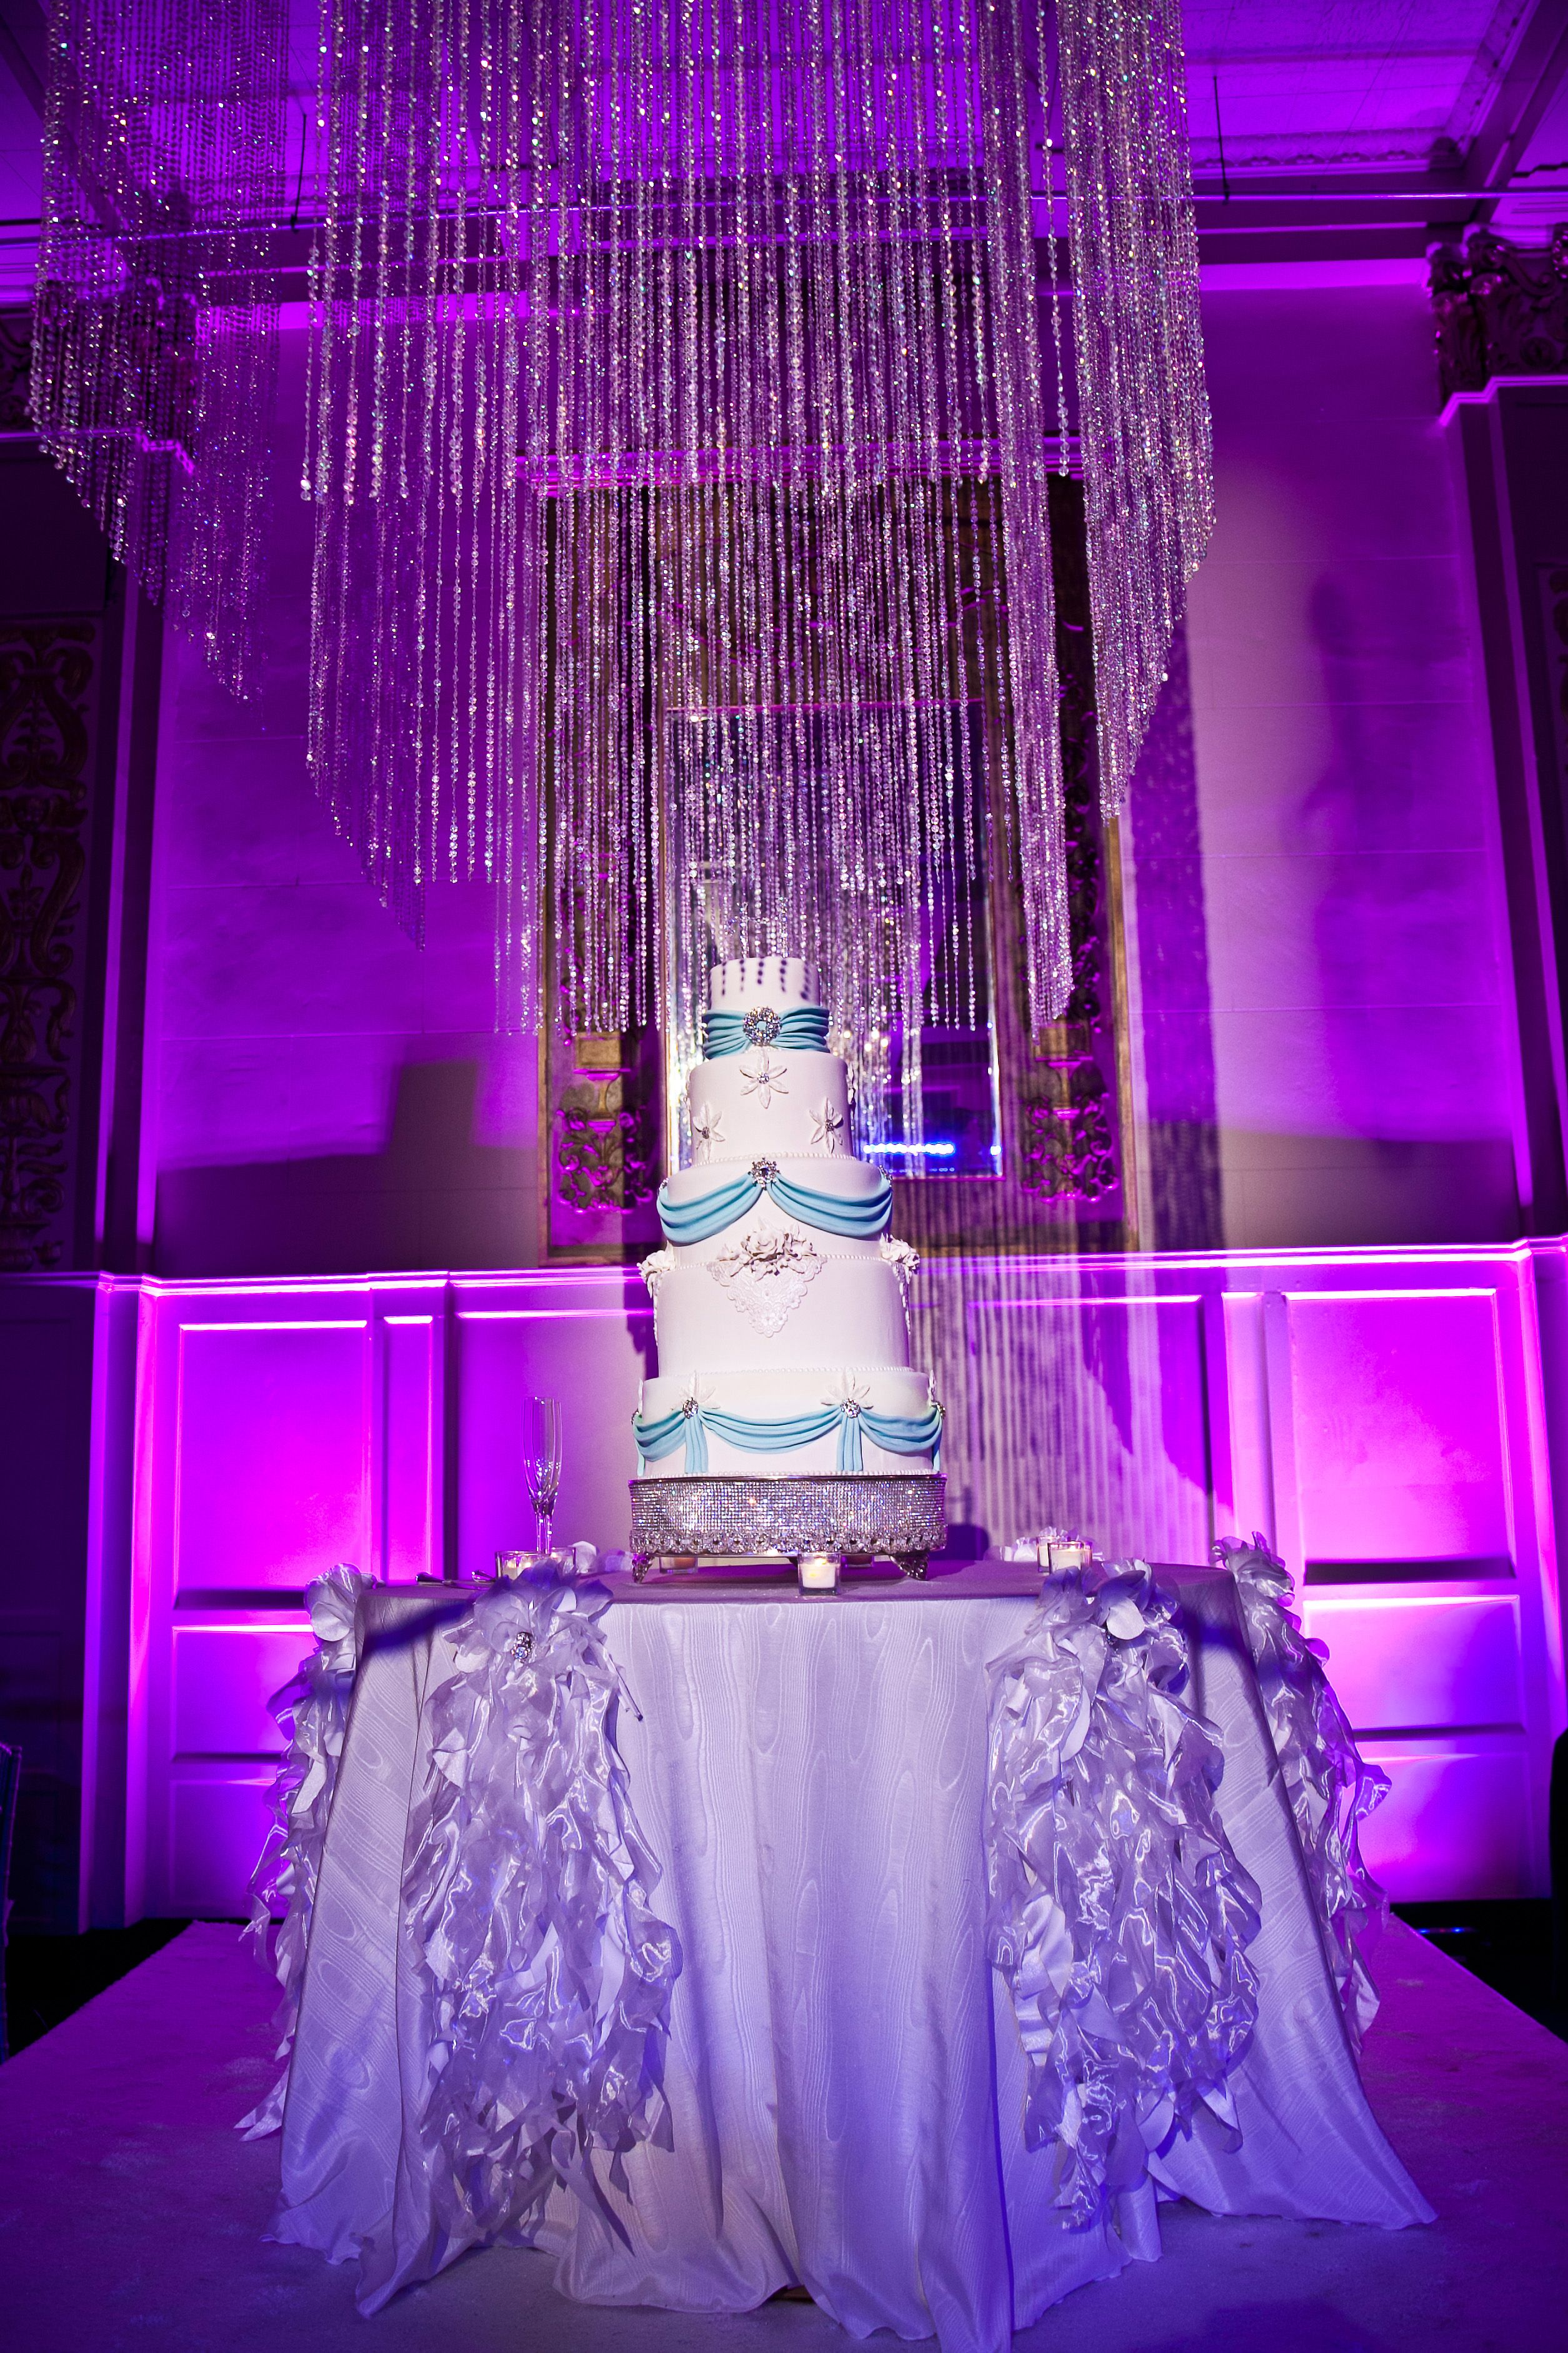 Elaborate wedding cake table by Southern Event Planners, Memphis, Tennessee.